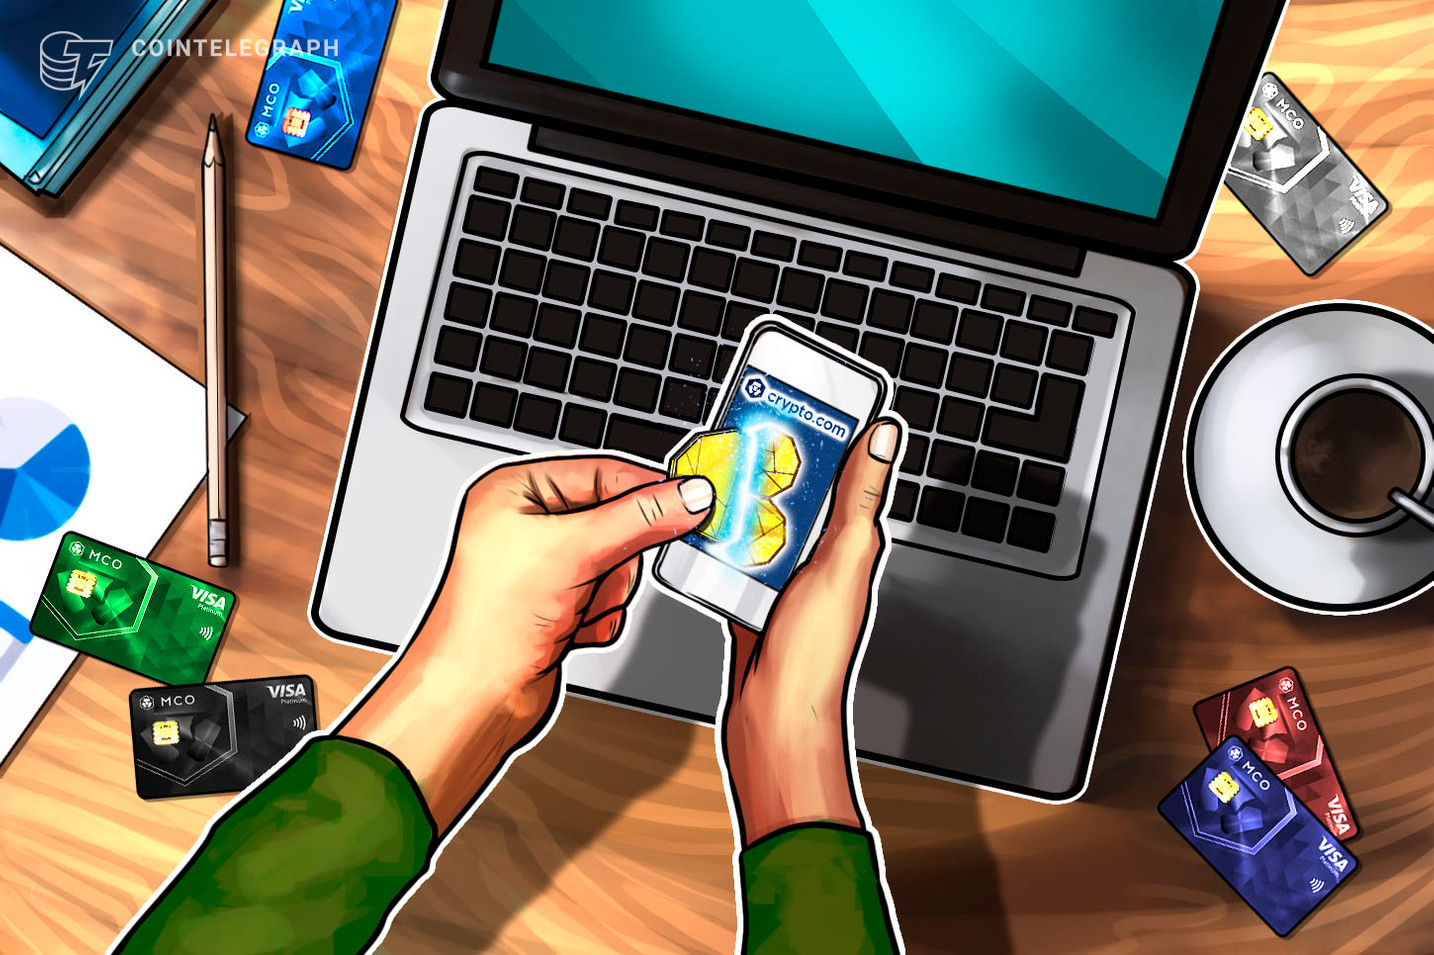 Crypto Platform Says It Has Launched Two Products to Challenge Banks and Empower Customers